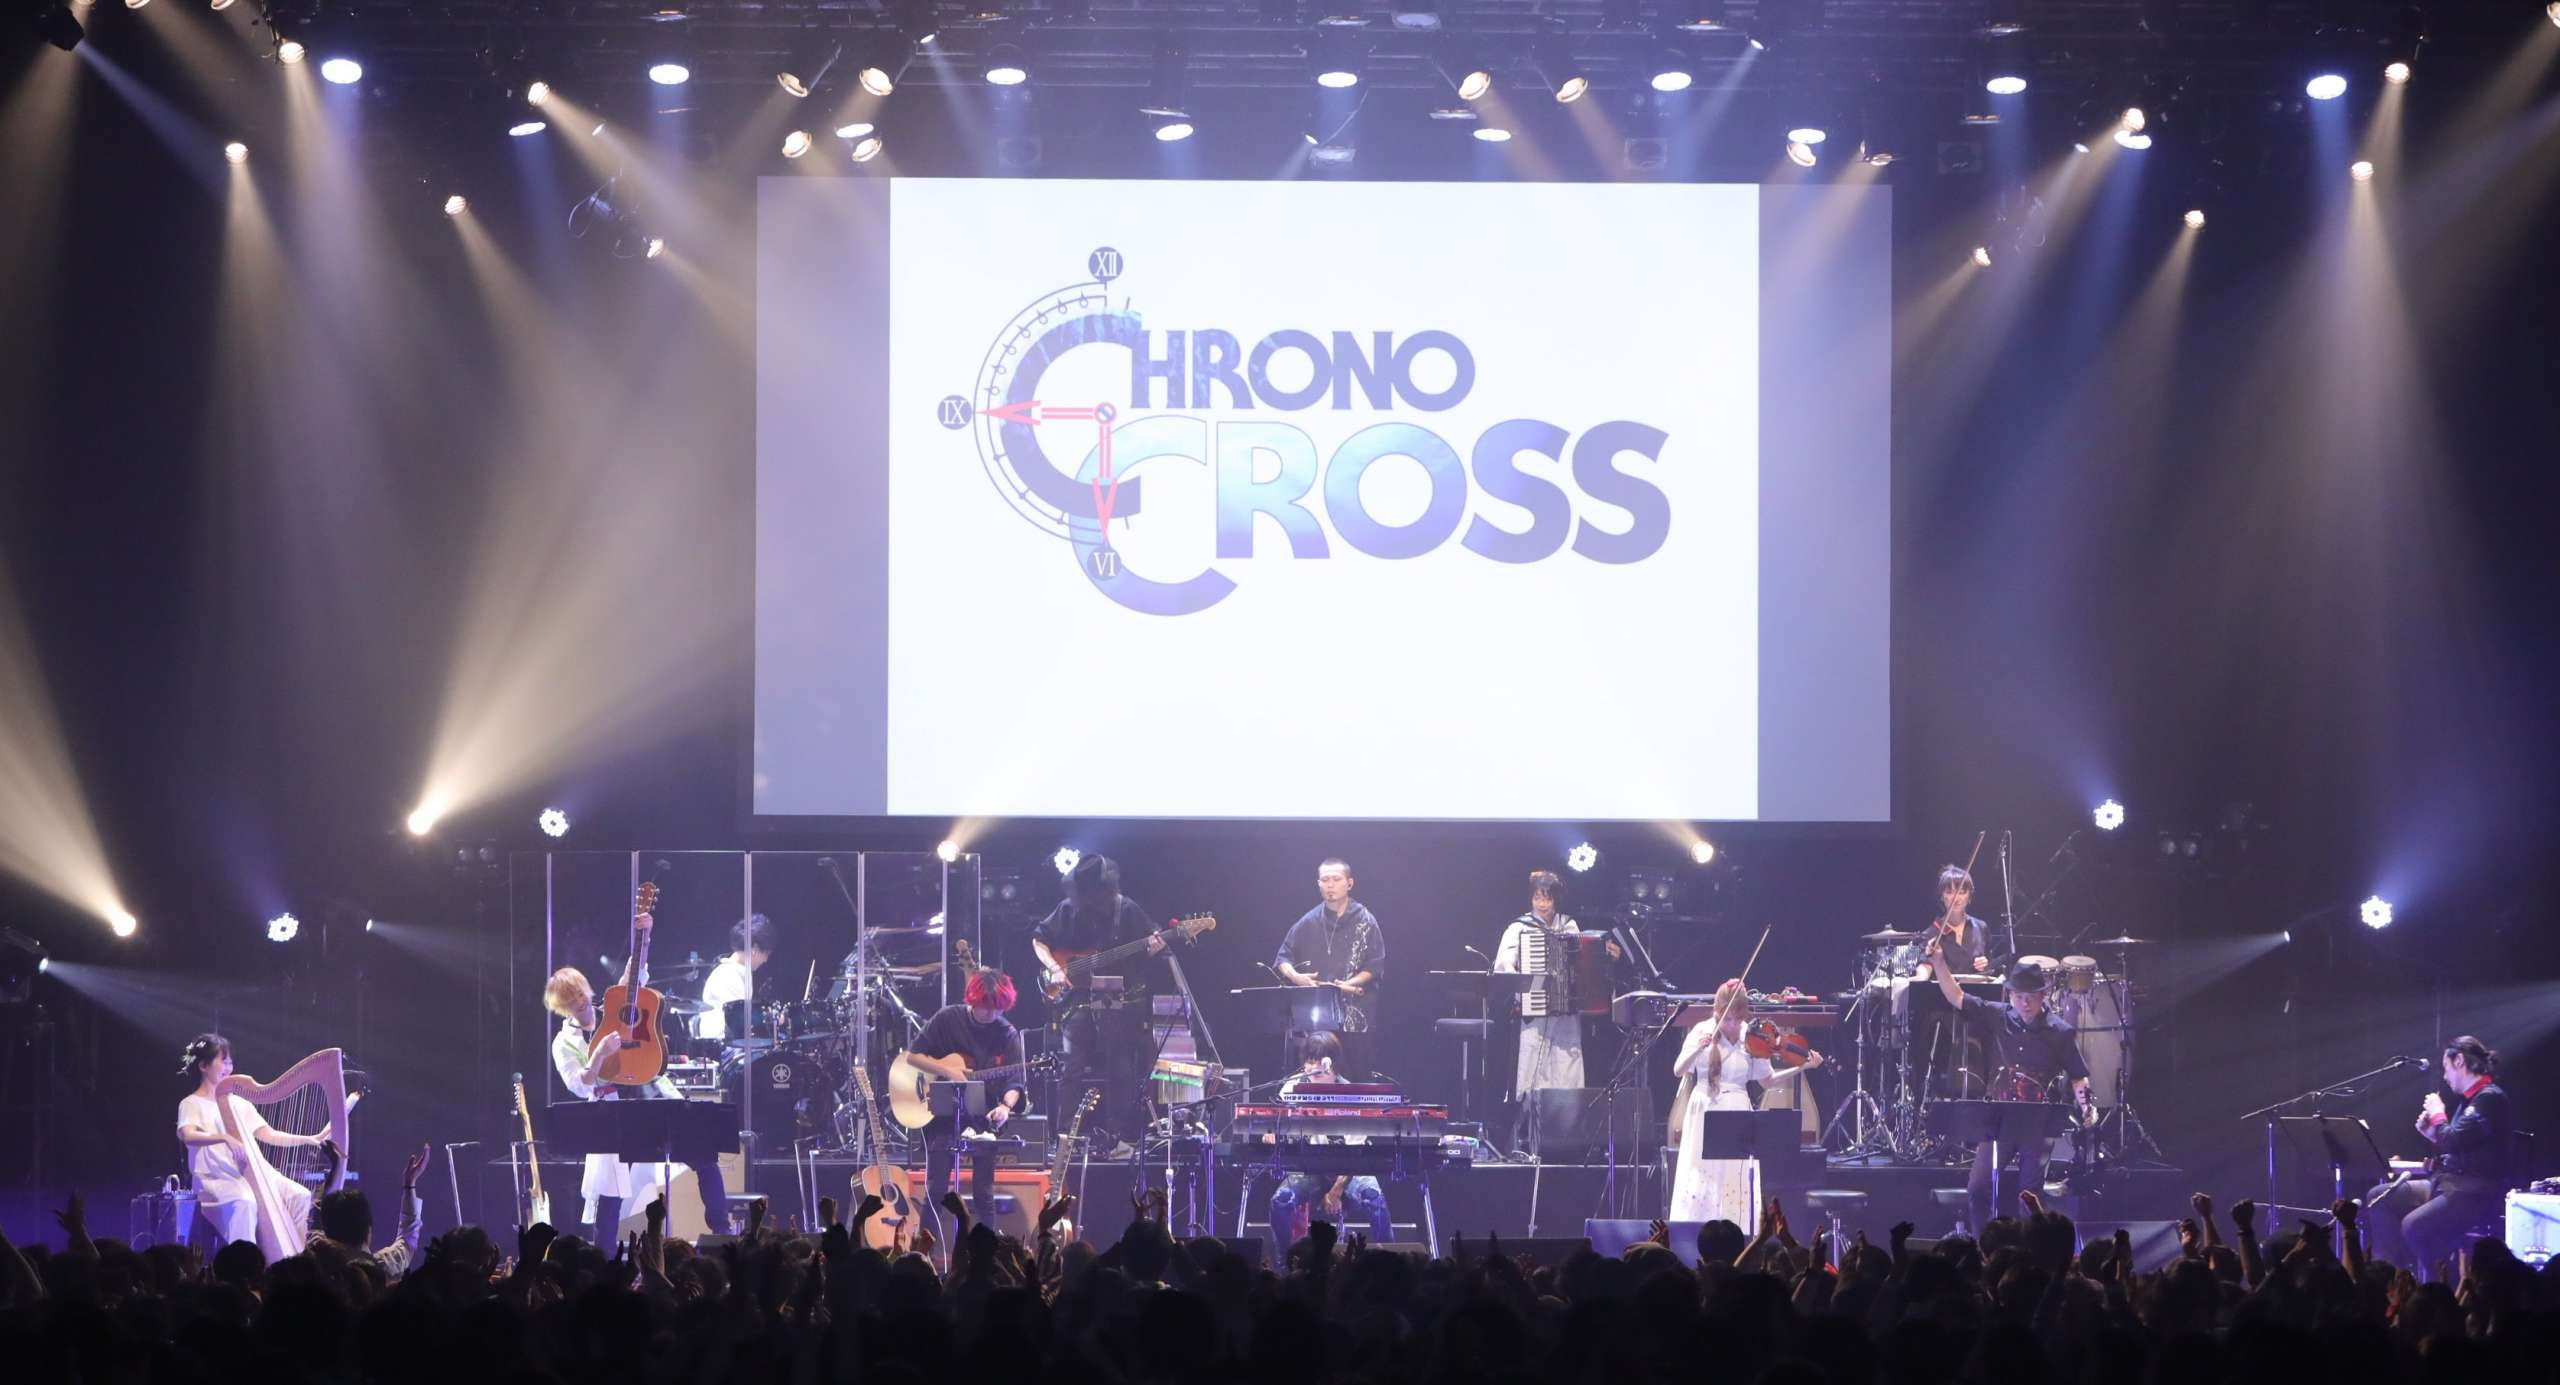 Chrono Cross Radical Dreamers 20th Anniversary Live Tour Begins In Japan